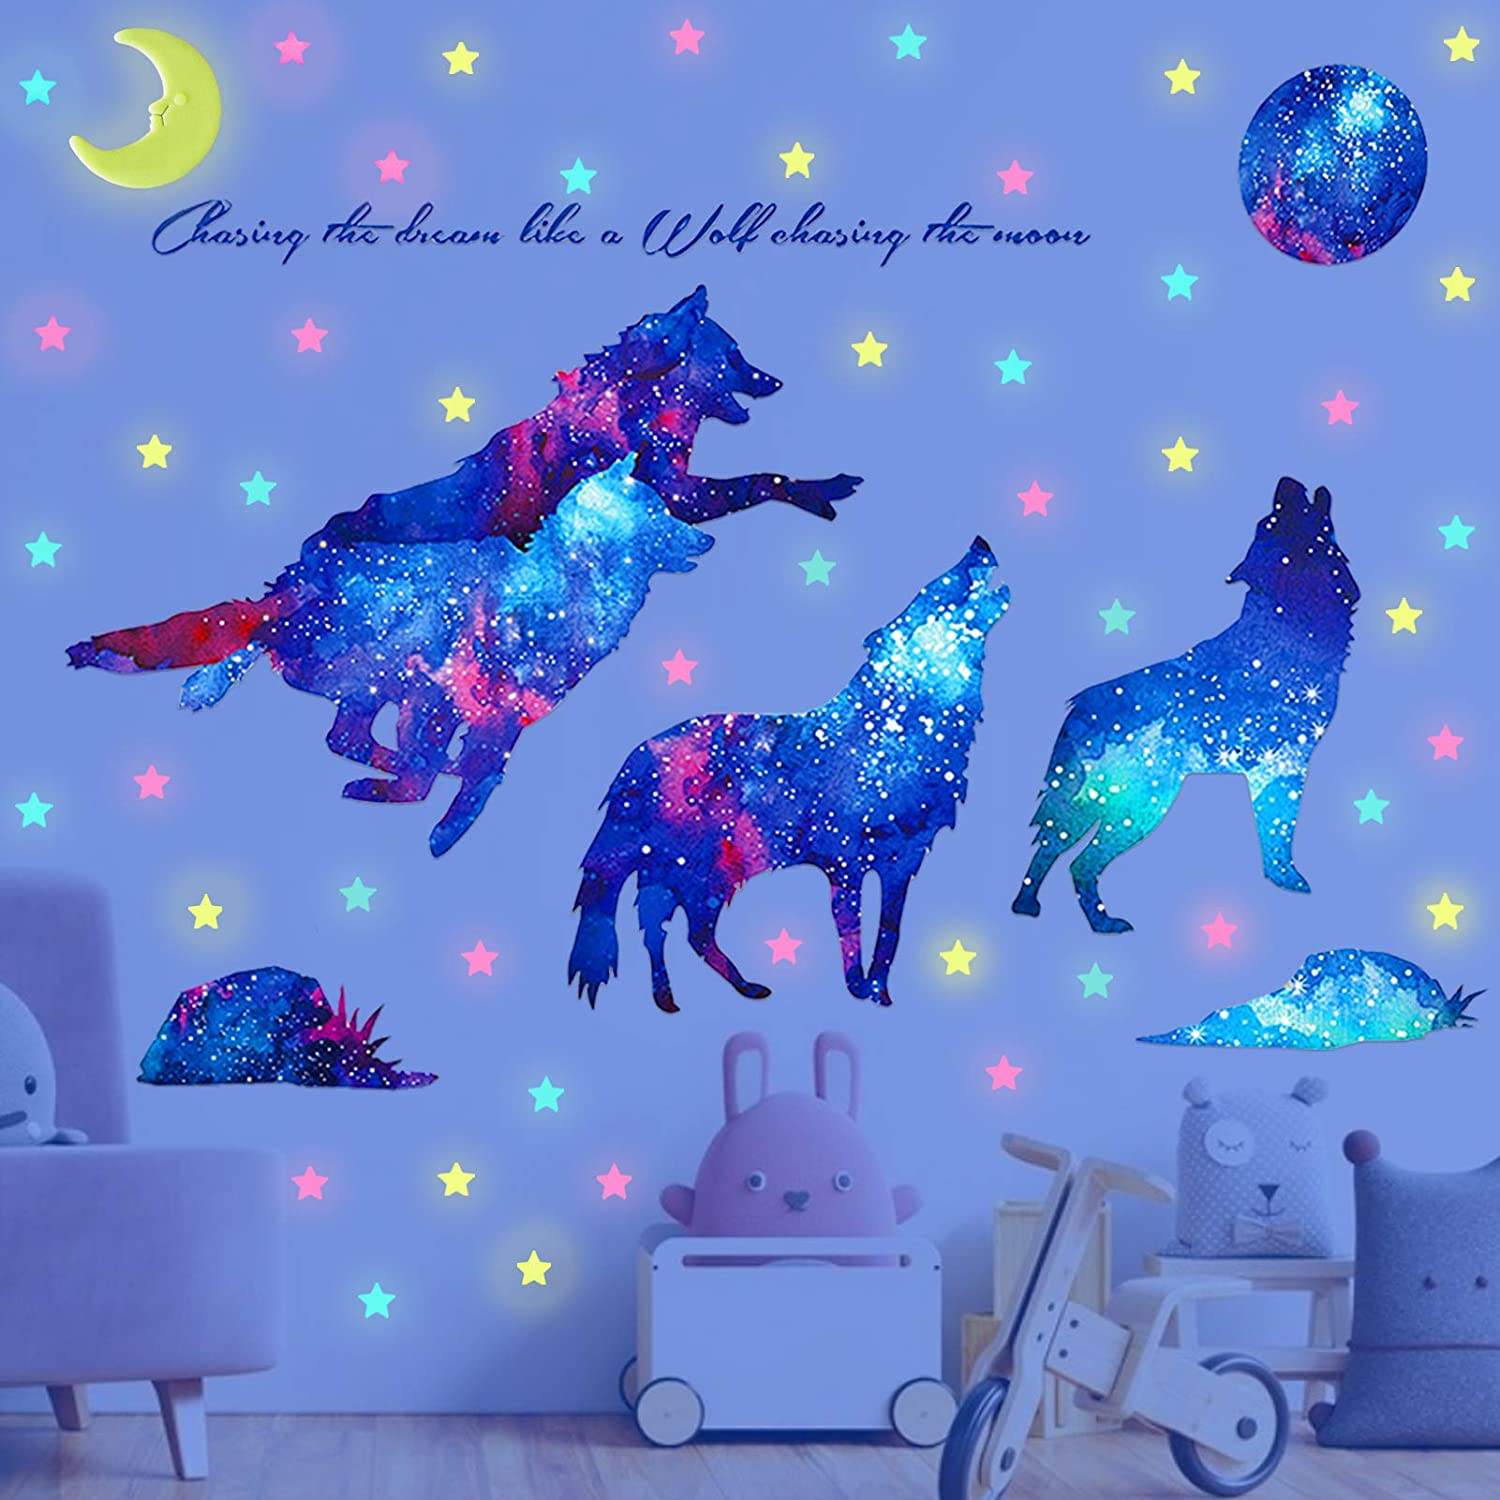 Blue 2 Set Creative 3D Blue Wolf and Planet Wall Decals Safe on Walls /& Easy Peel TANOKY Removable Wolf 3D Outer Space Planet Wall Stickers Murals Home Decor for Bedroom Boys Girls Nursery Room